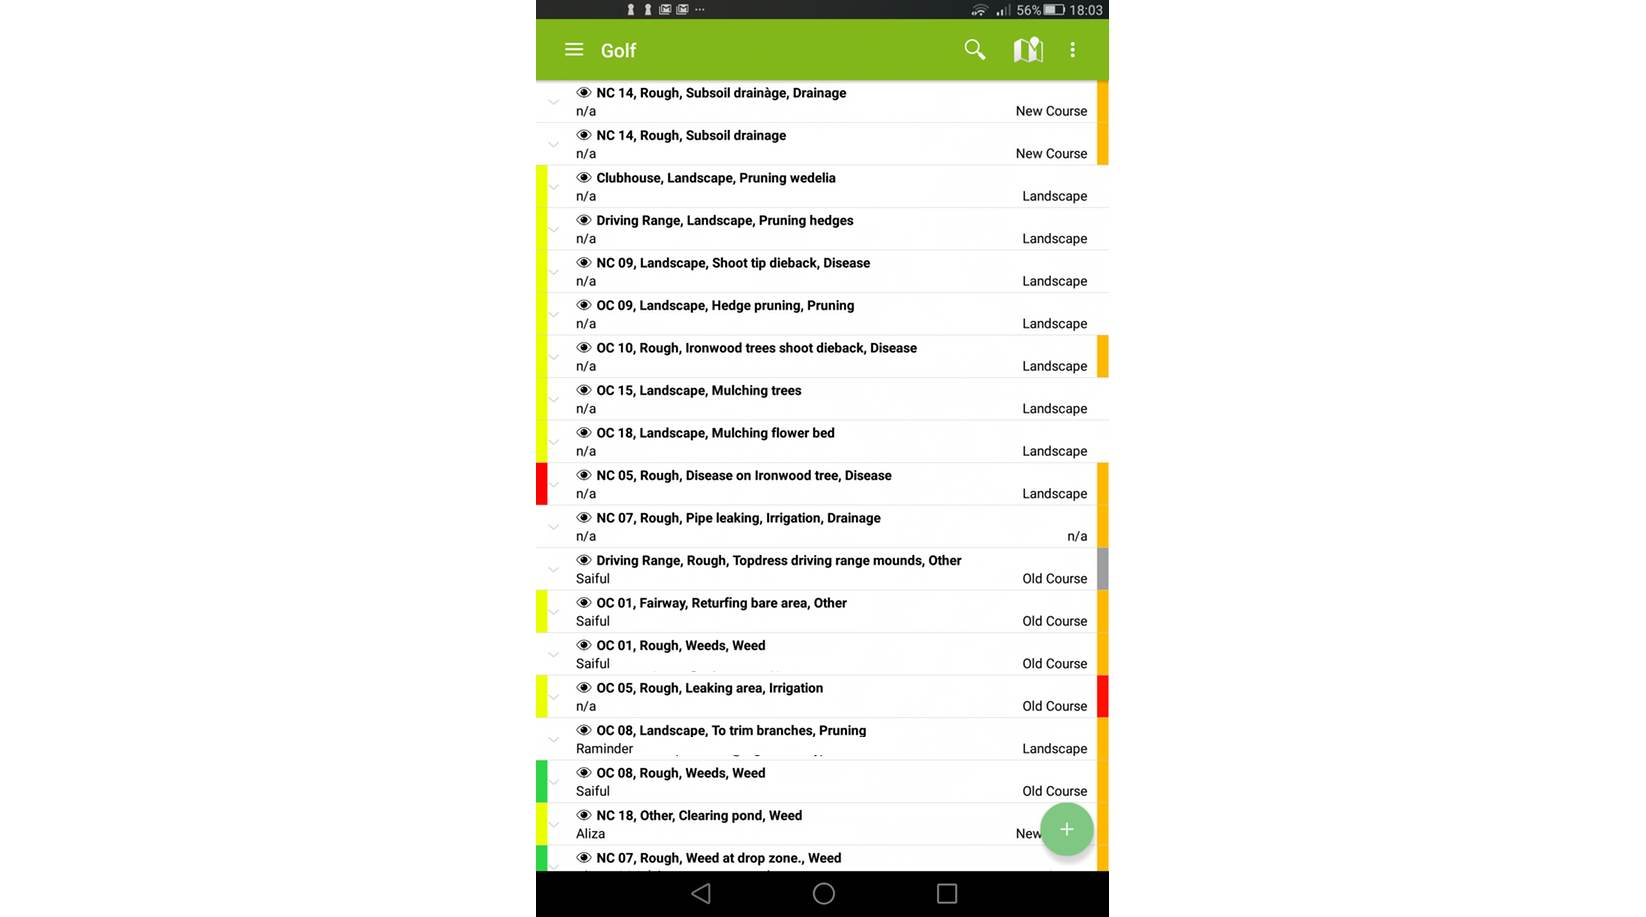 mapgage fieldapp screenshot golf issue record list overview